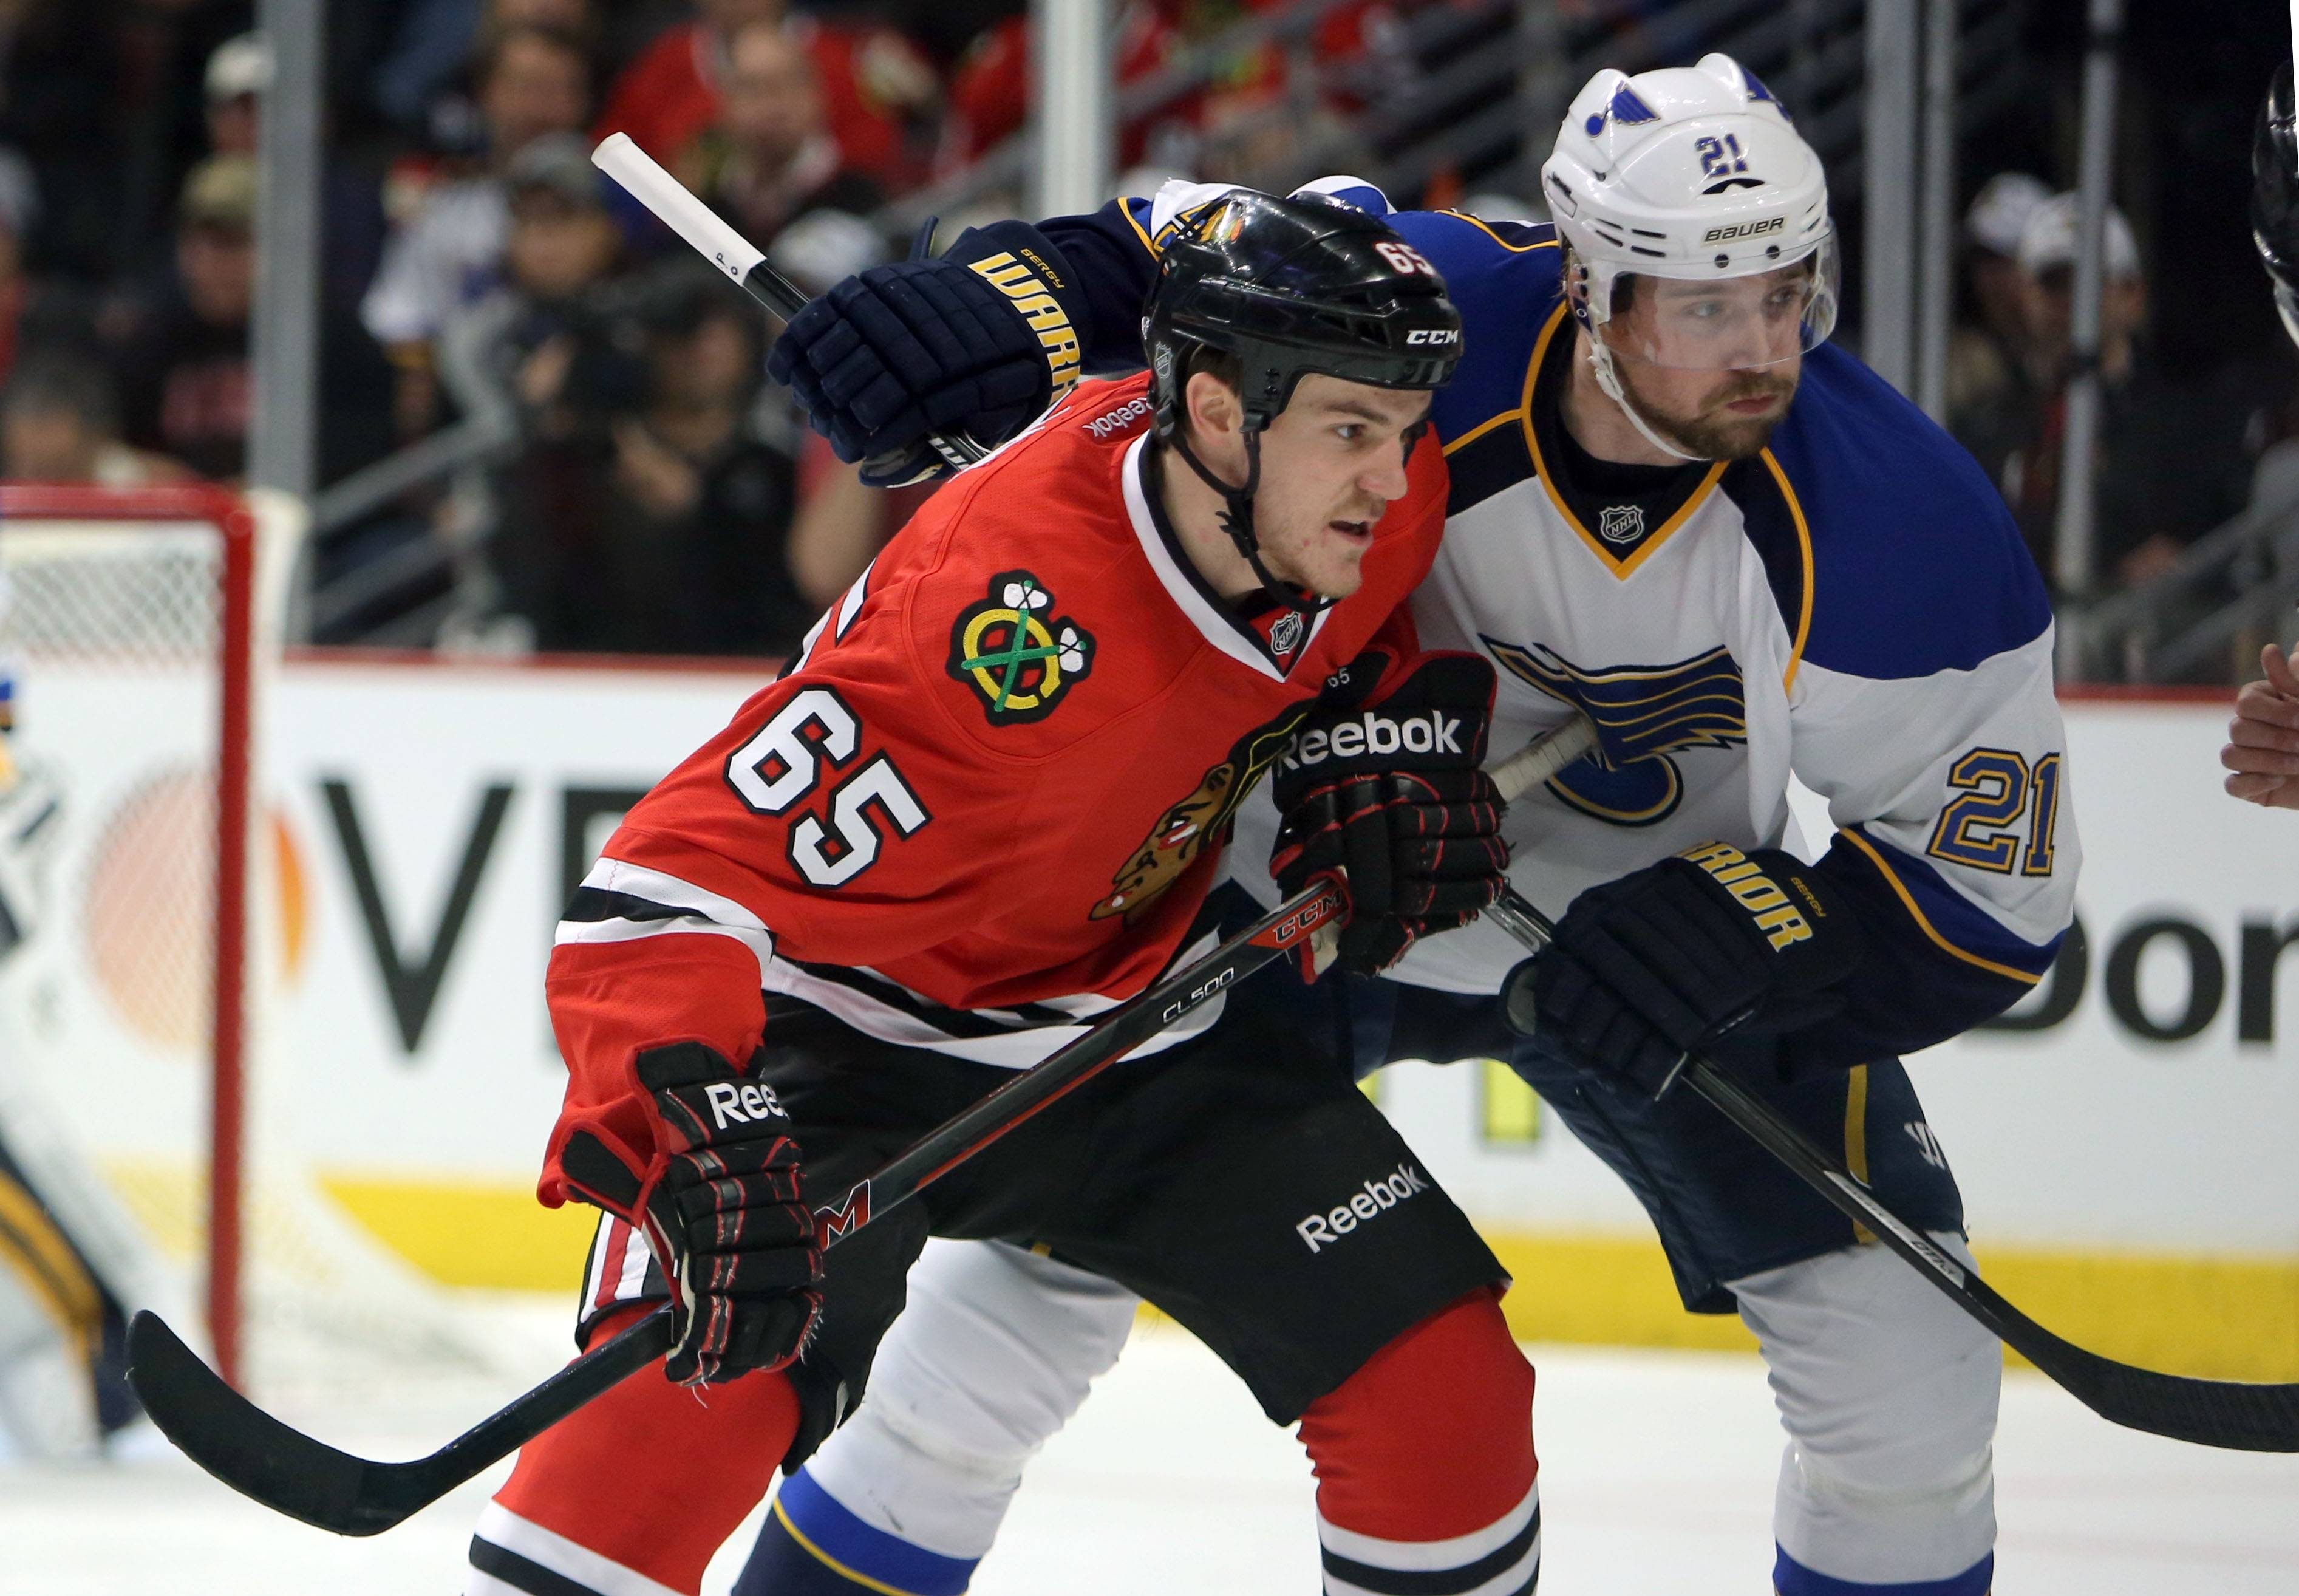 Chicago Blackhawks center Andrew Shaw battles with St. Louis Blues center Patrik Berglund.